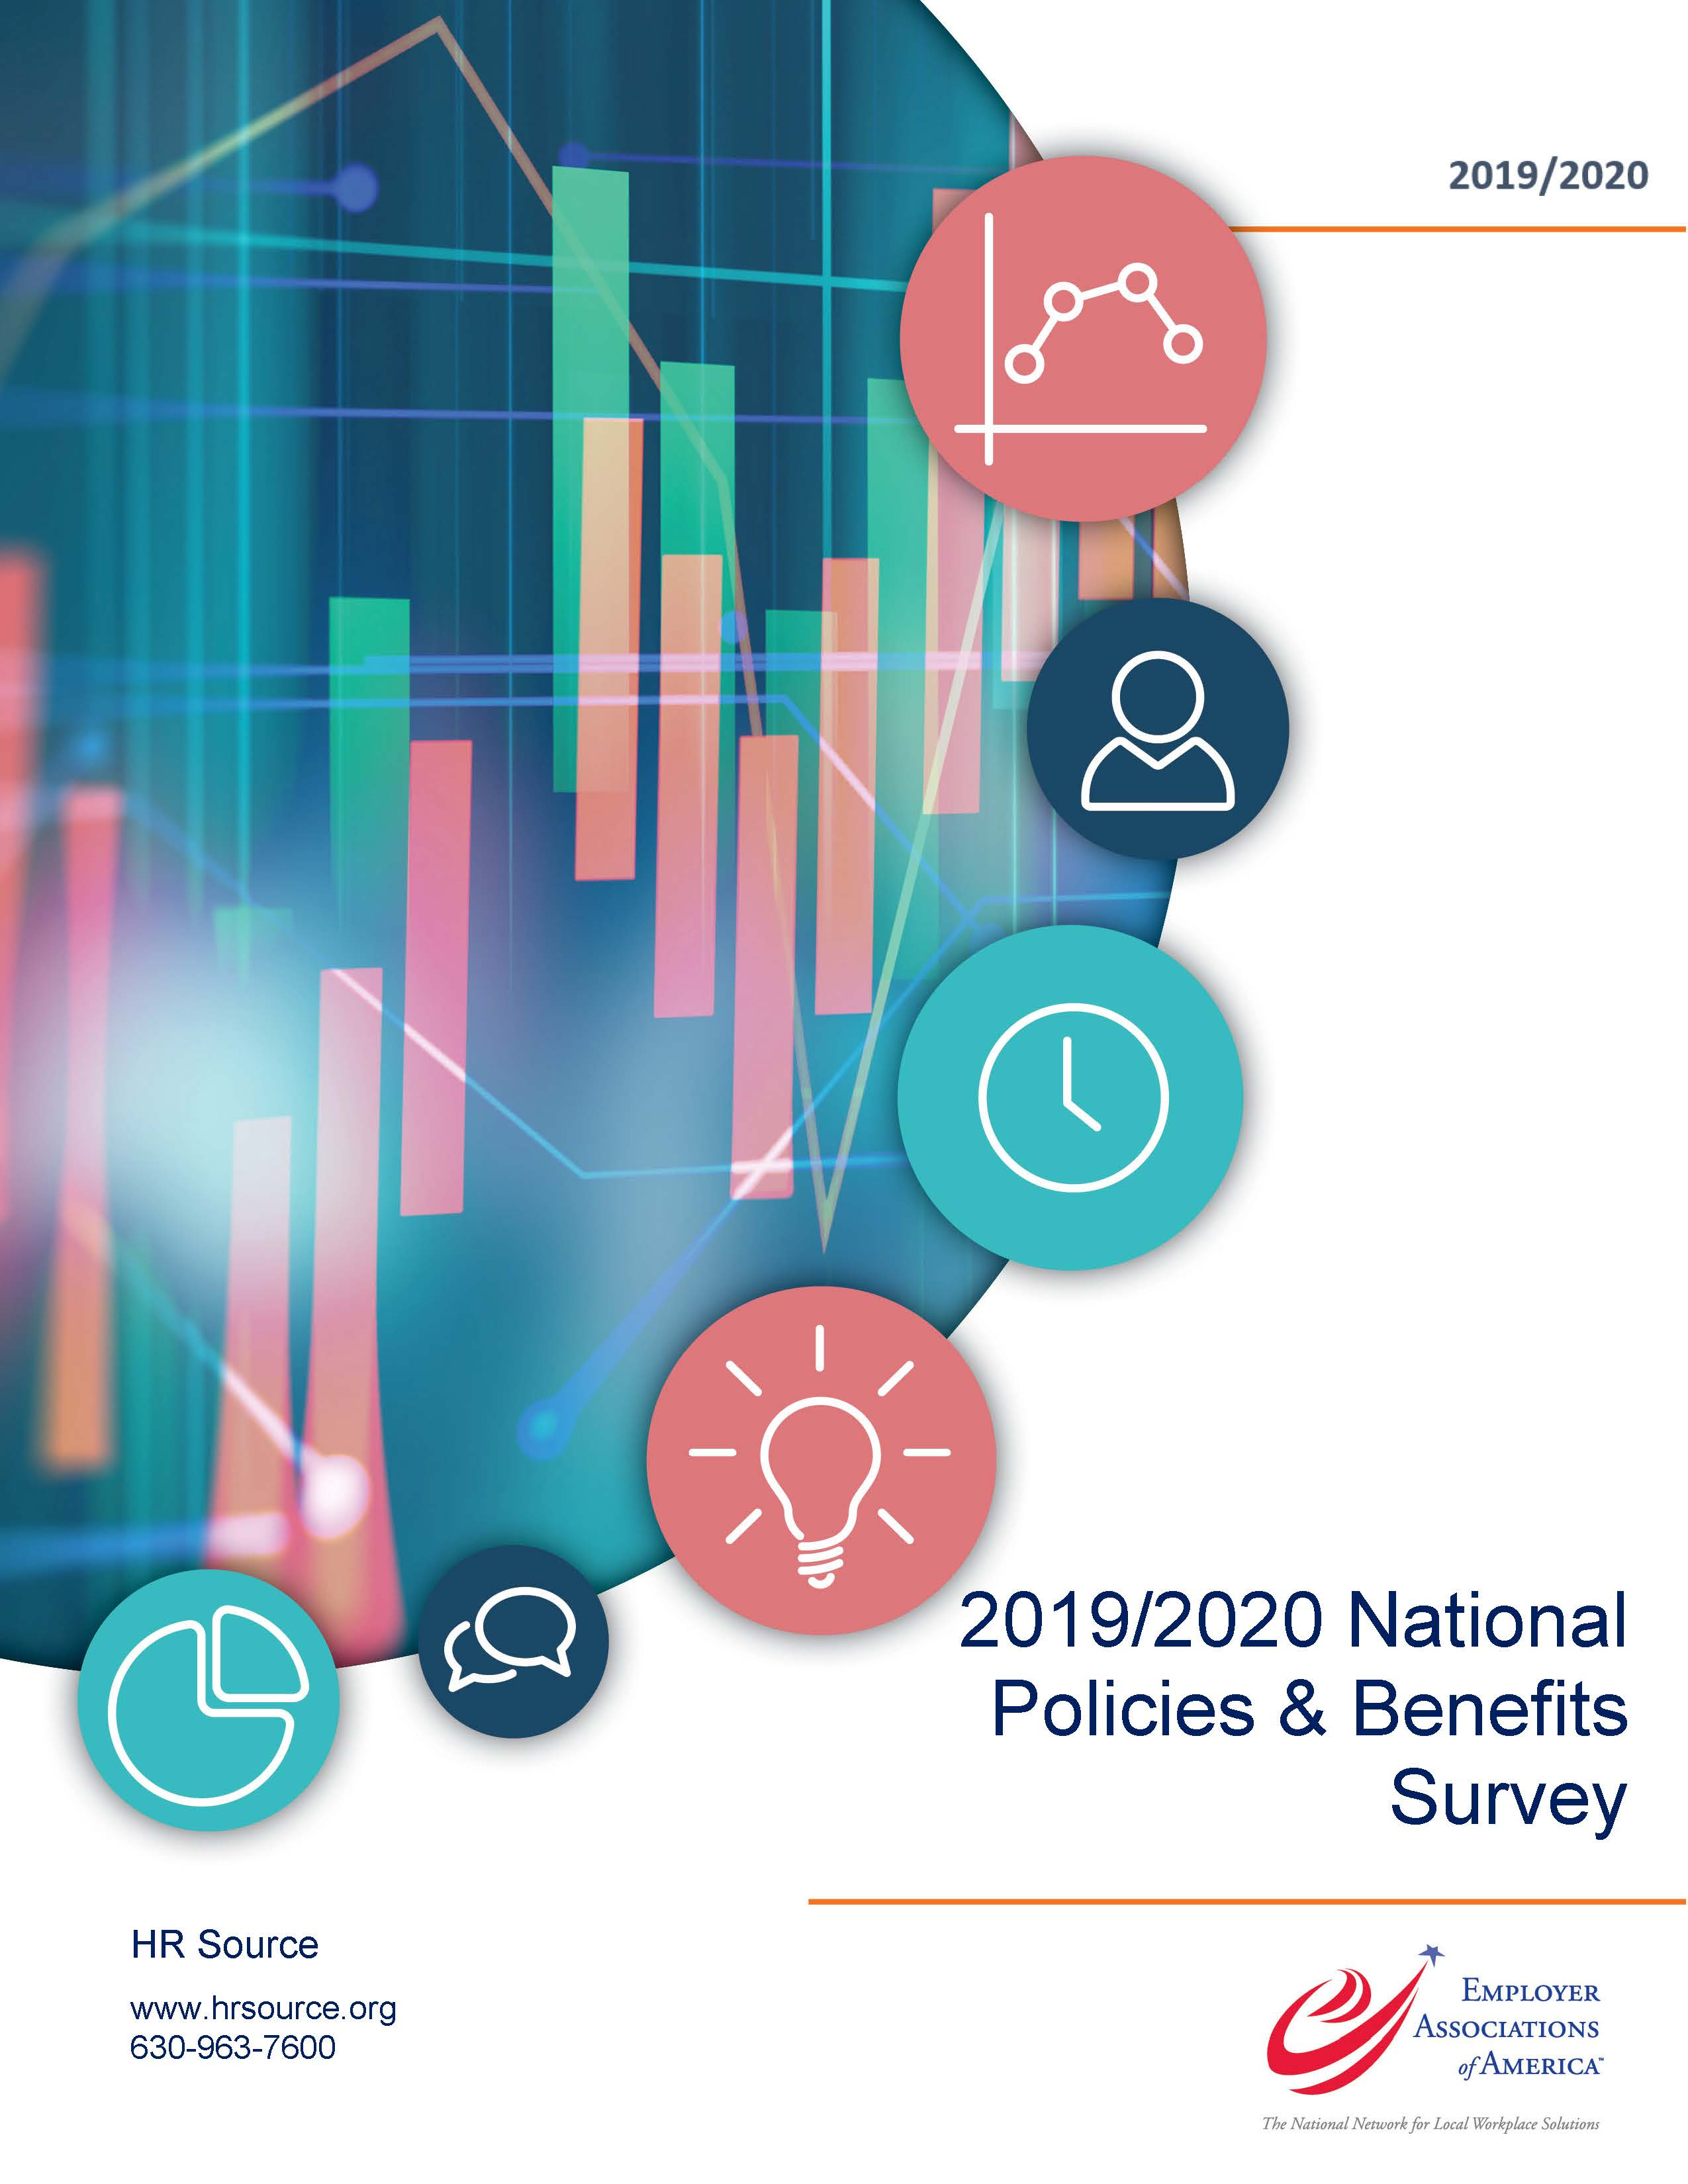 National Policies and Benefits Survey 2019/2020